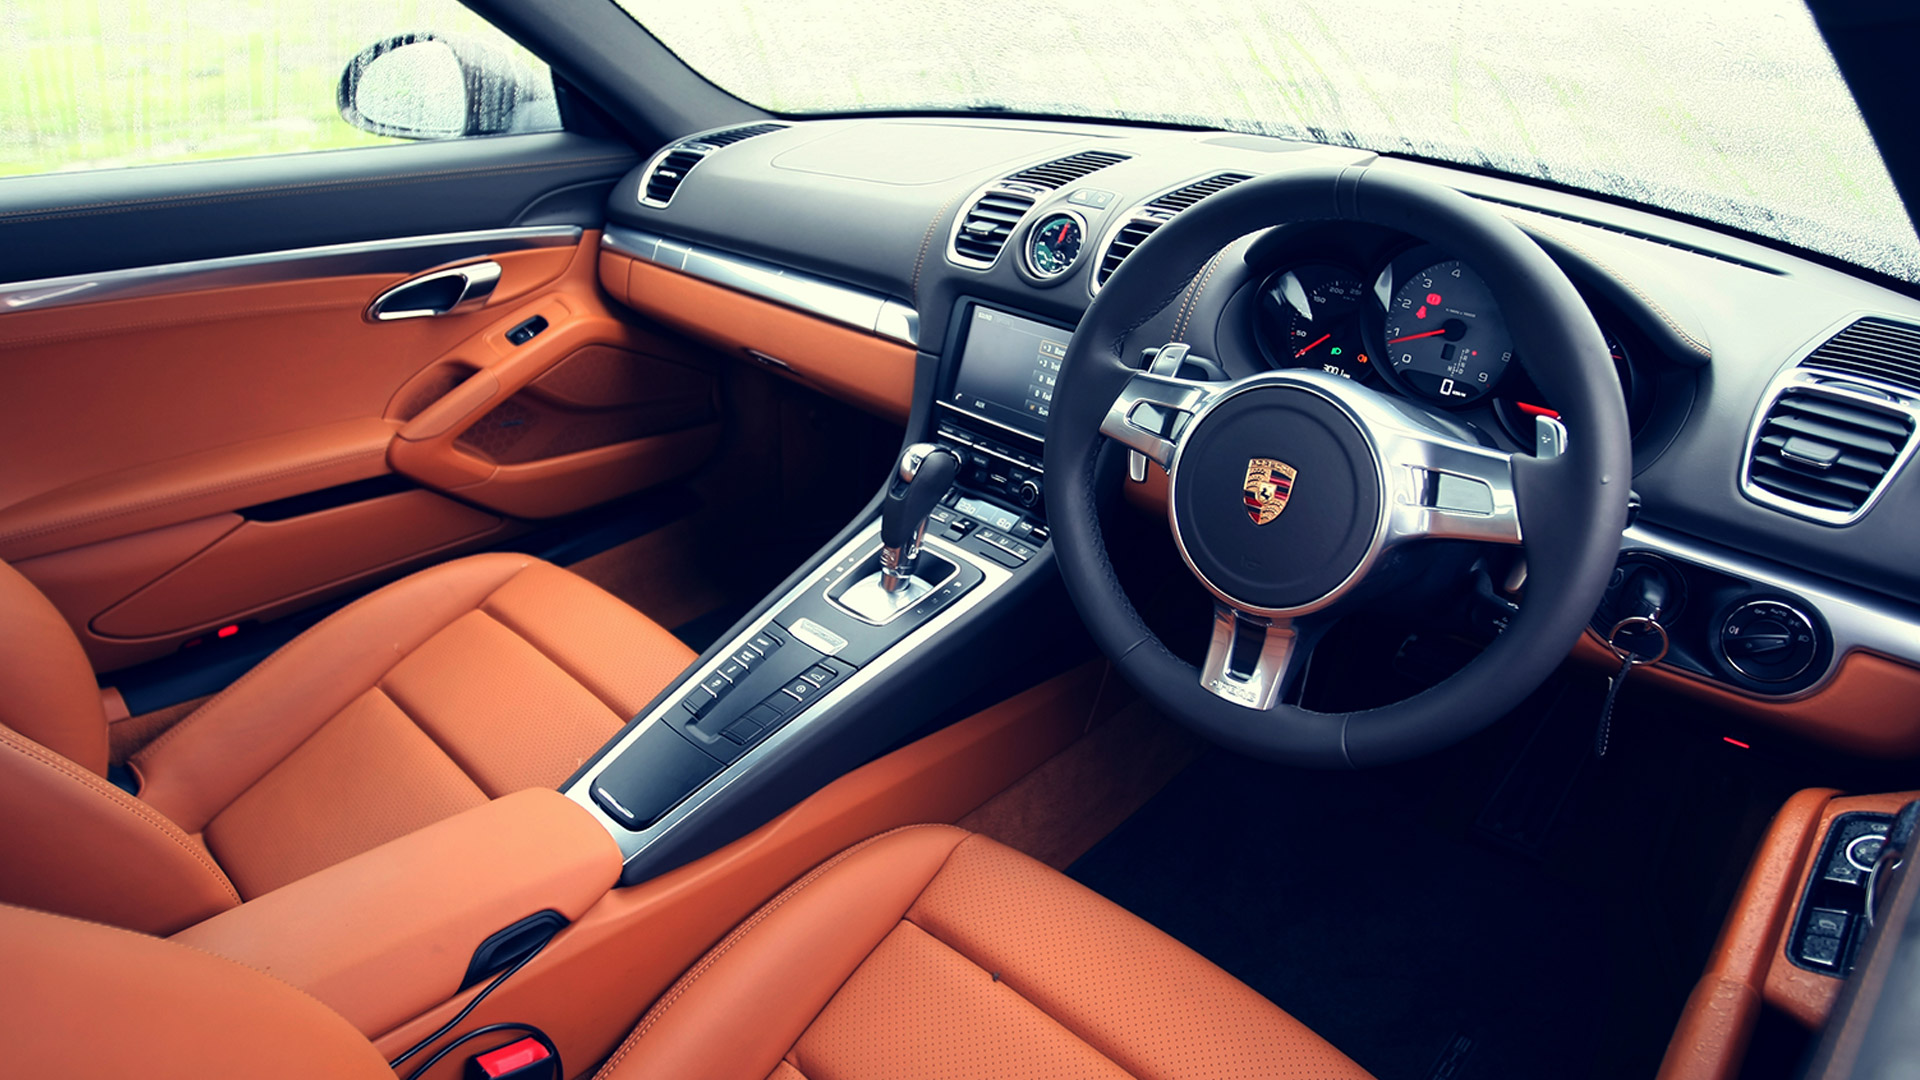 Porsche Cayman 2015 S Price Mileage Reviews Specification Gallery Overdrive